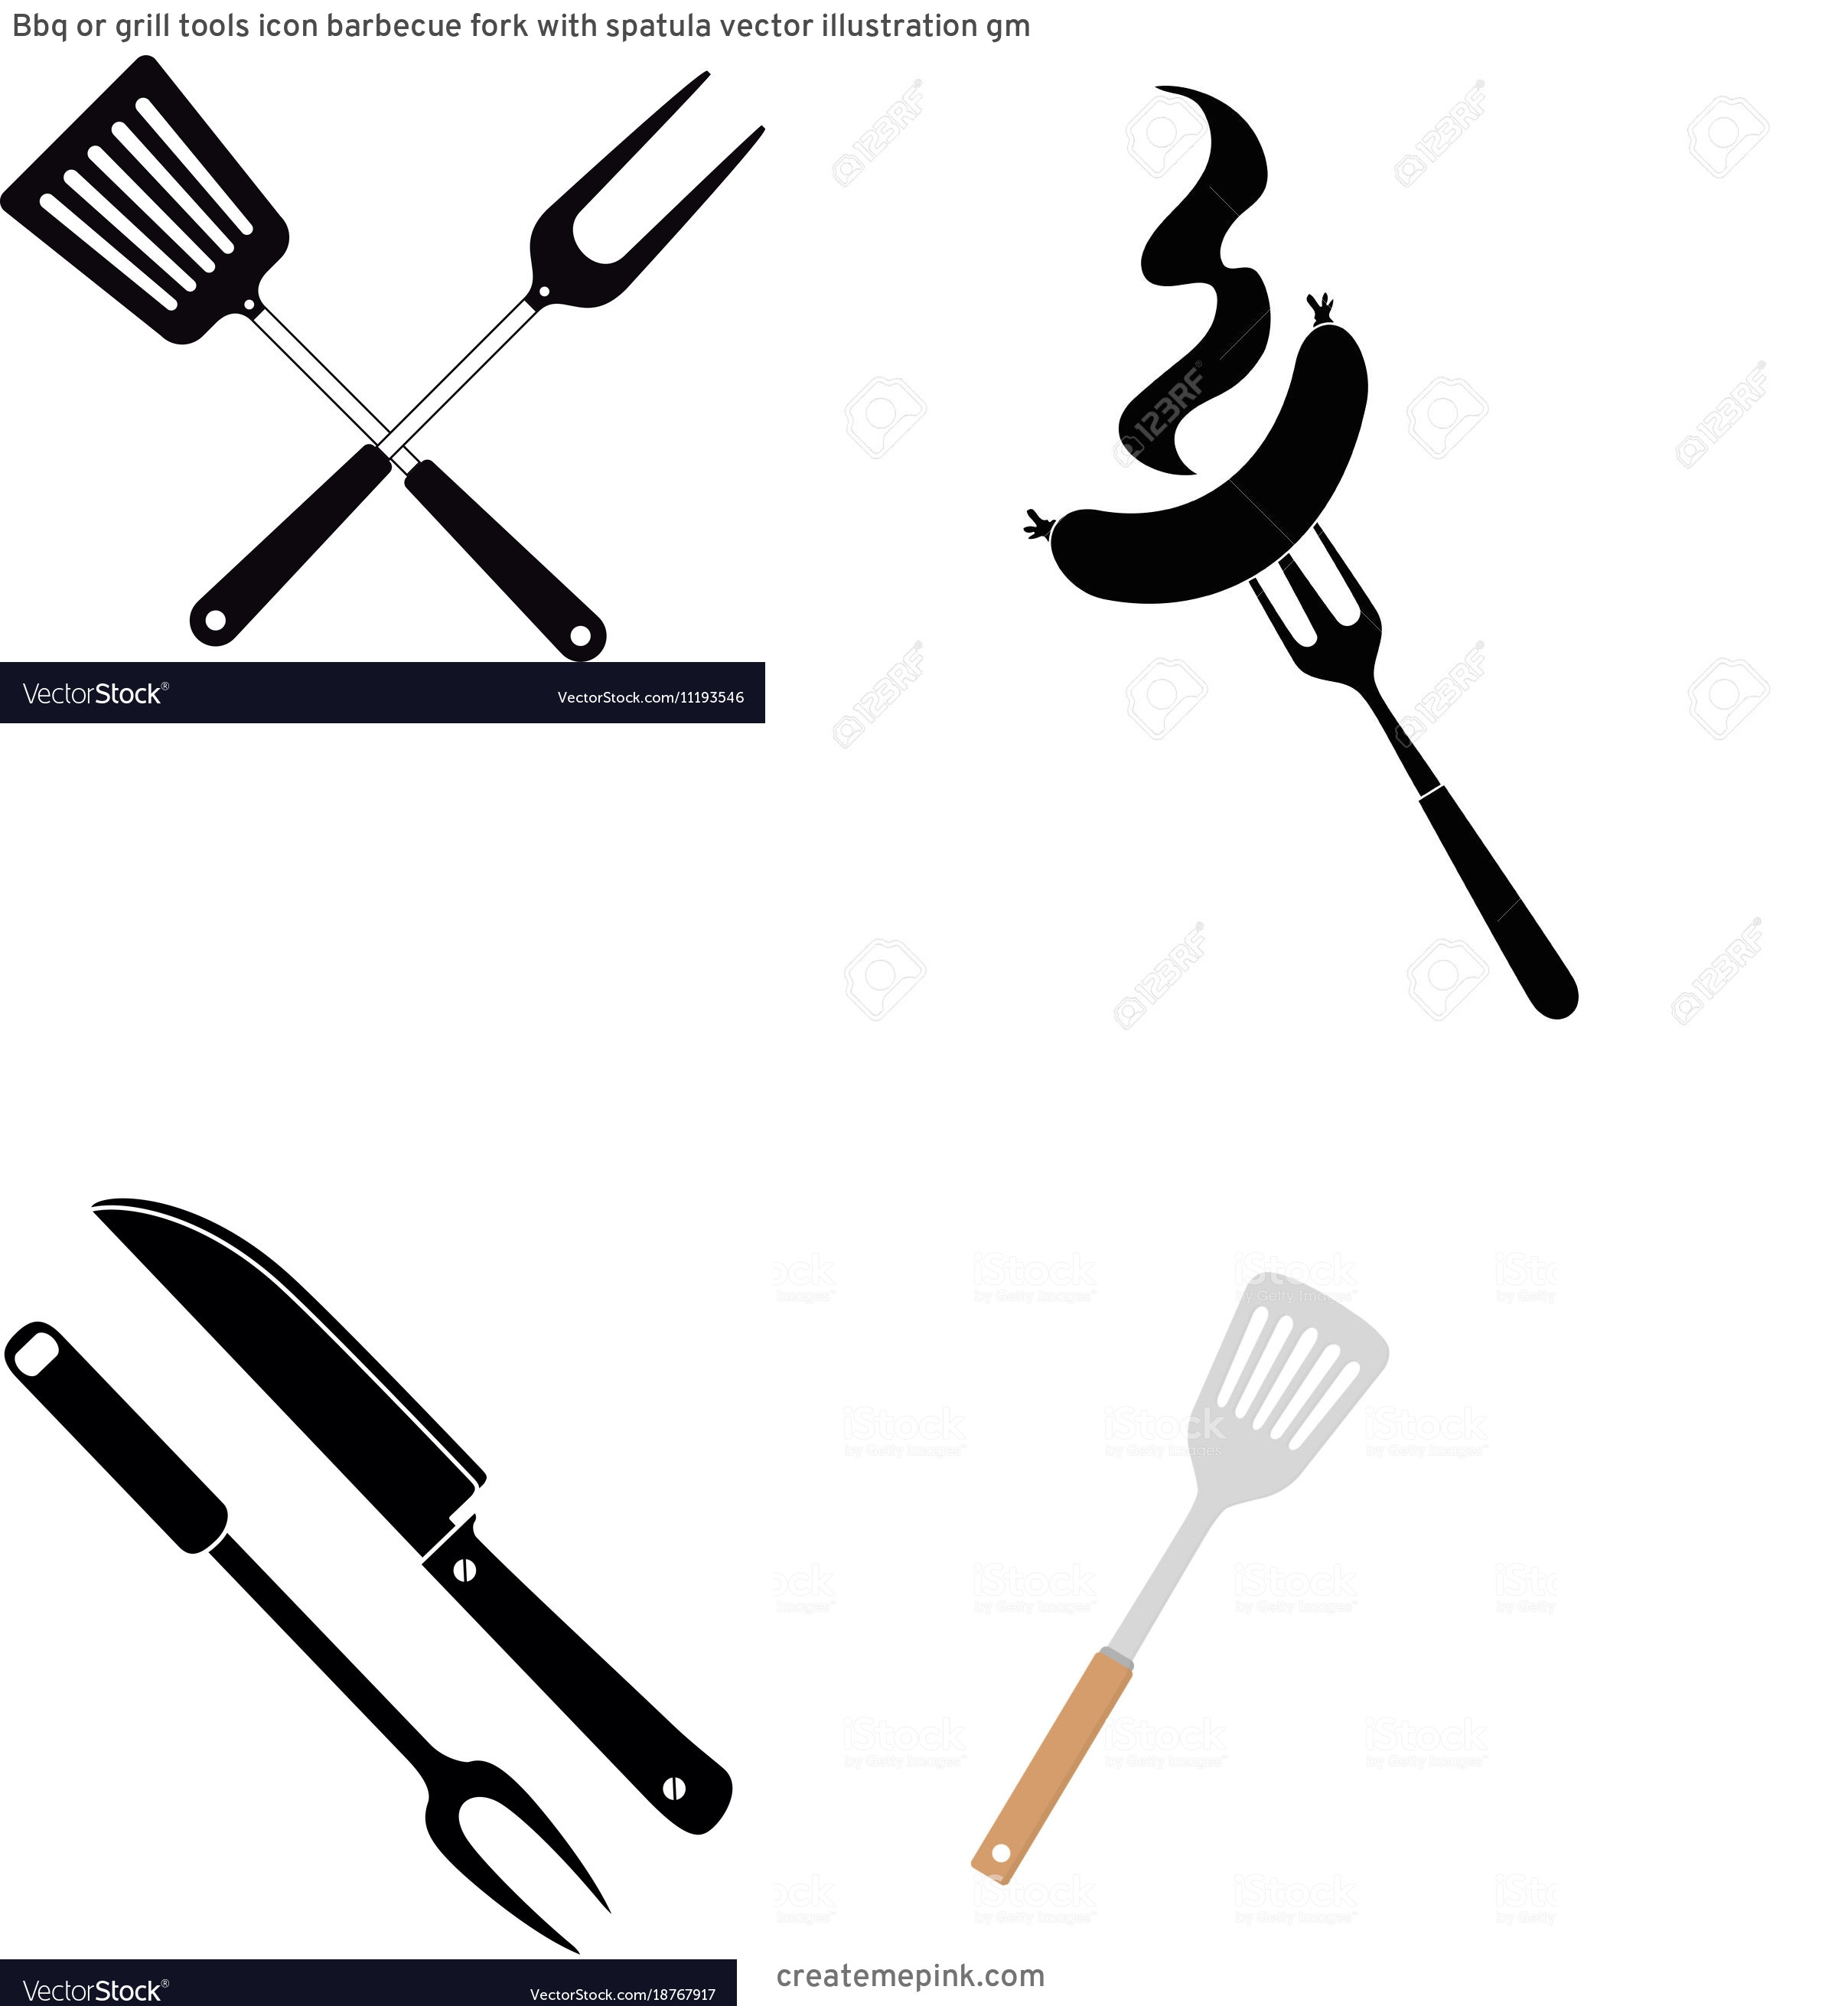 BBQ Fork Vector: Bbq Or Grill Tools Icon Barbecue Fork With Spatula Vector Illustration Gm